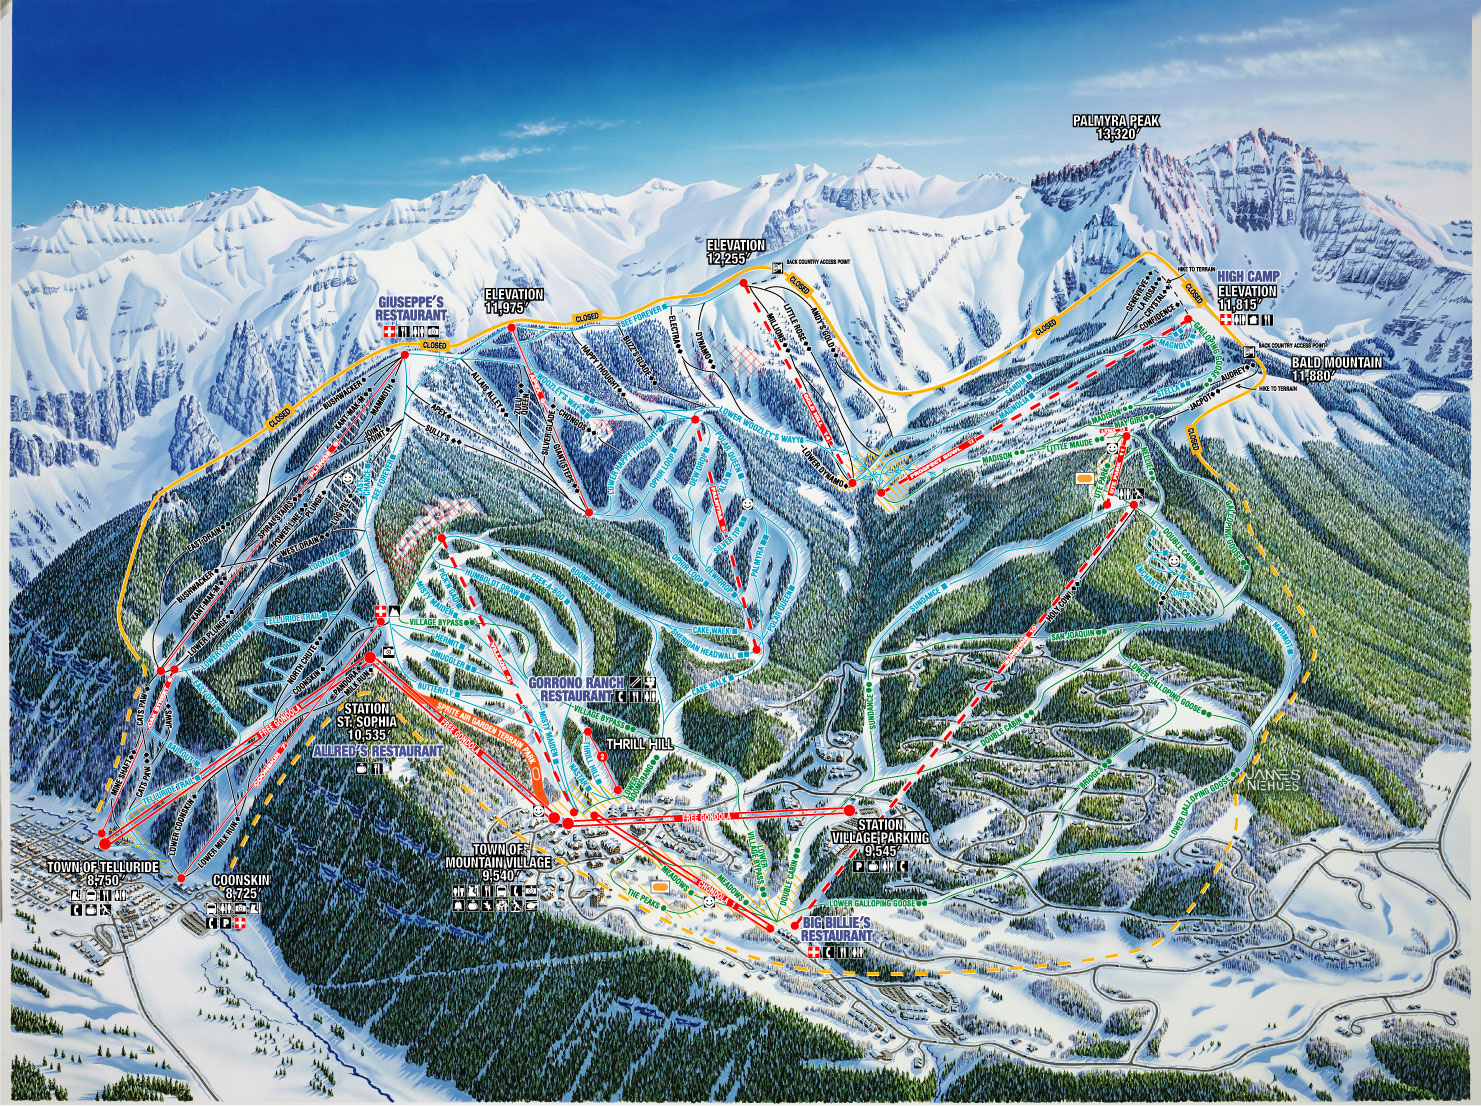 Telluride Piste / Trail Map